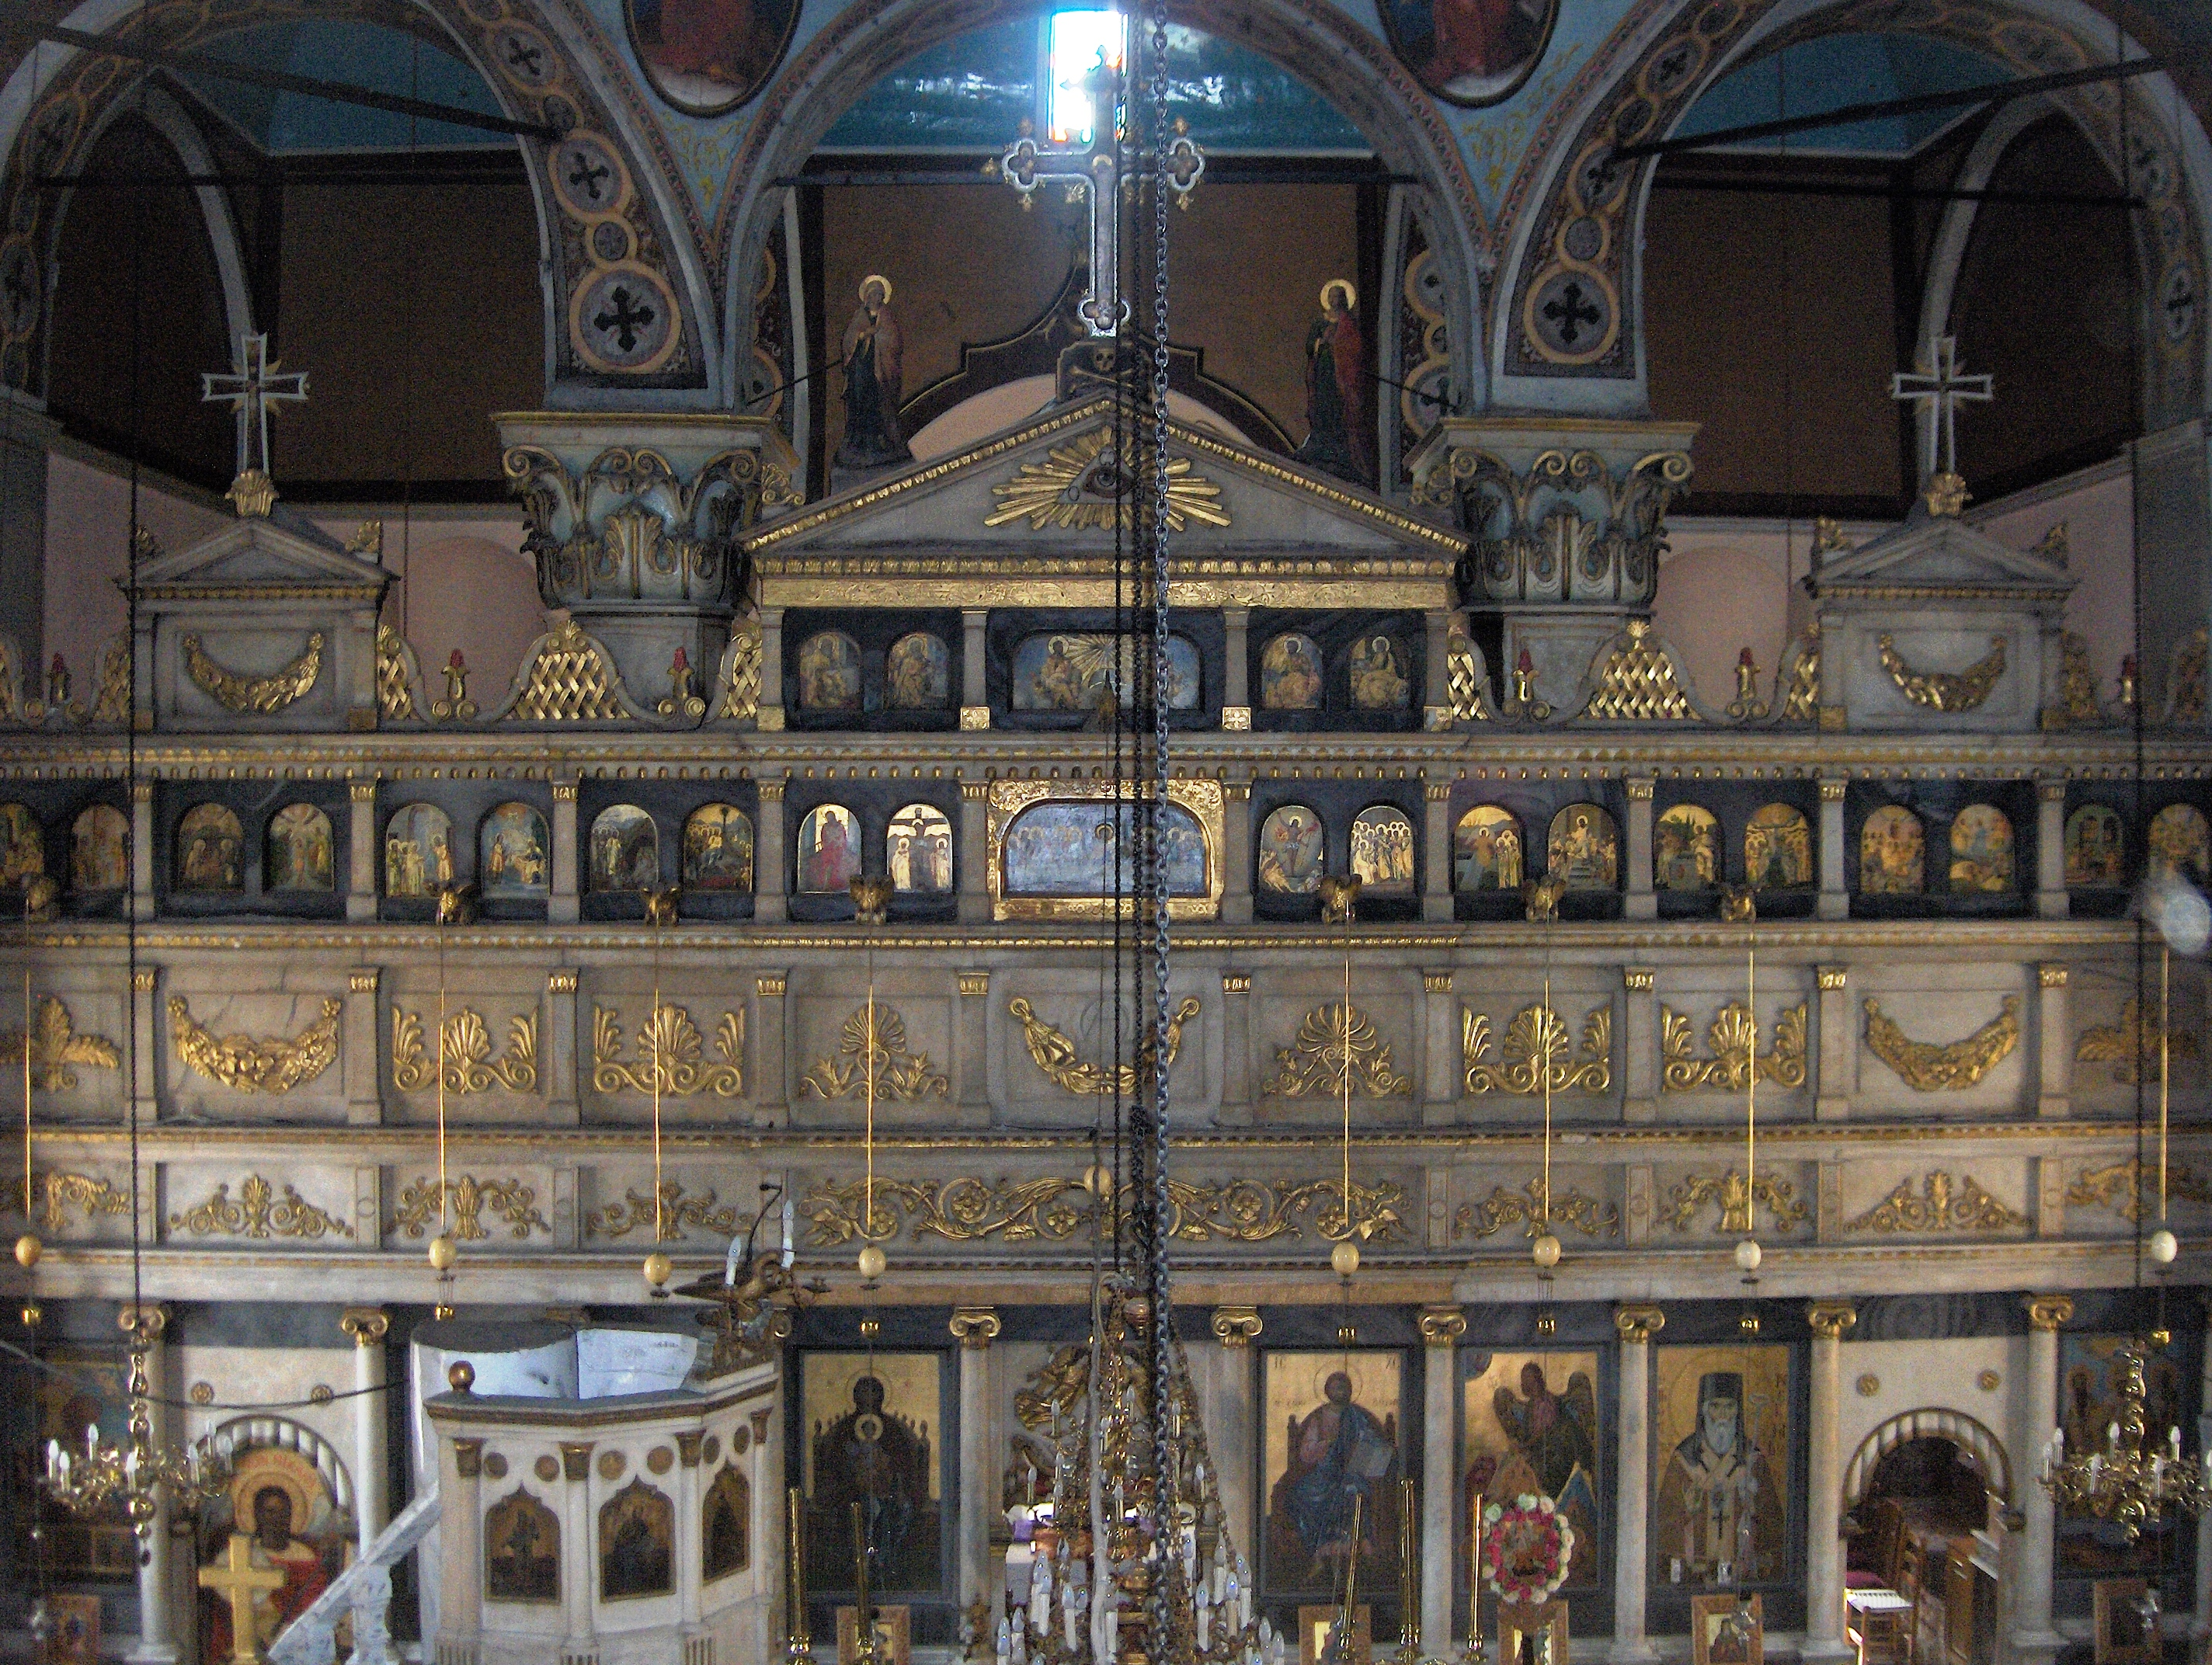 https://upload.wikimedia.org/wikipedia/commons/c/ce/Altar_of_Prodromos_church_in_Kranidi_2.jpg